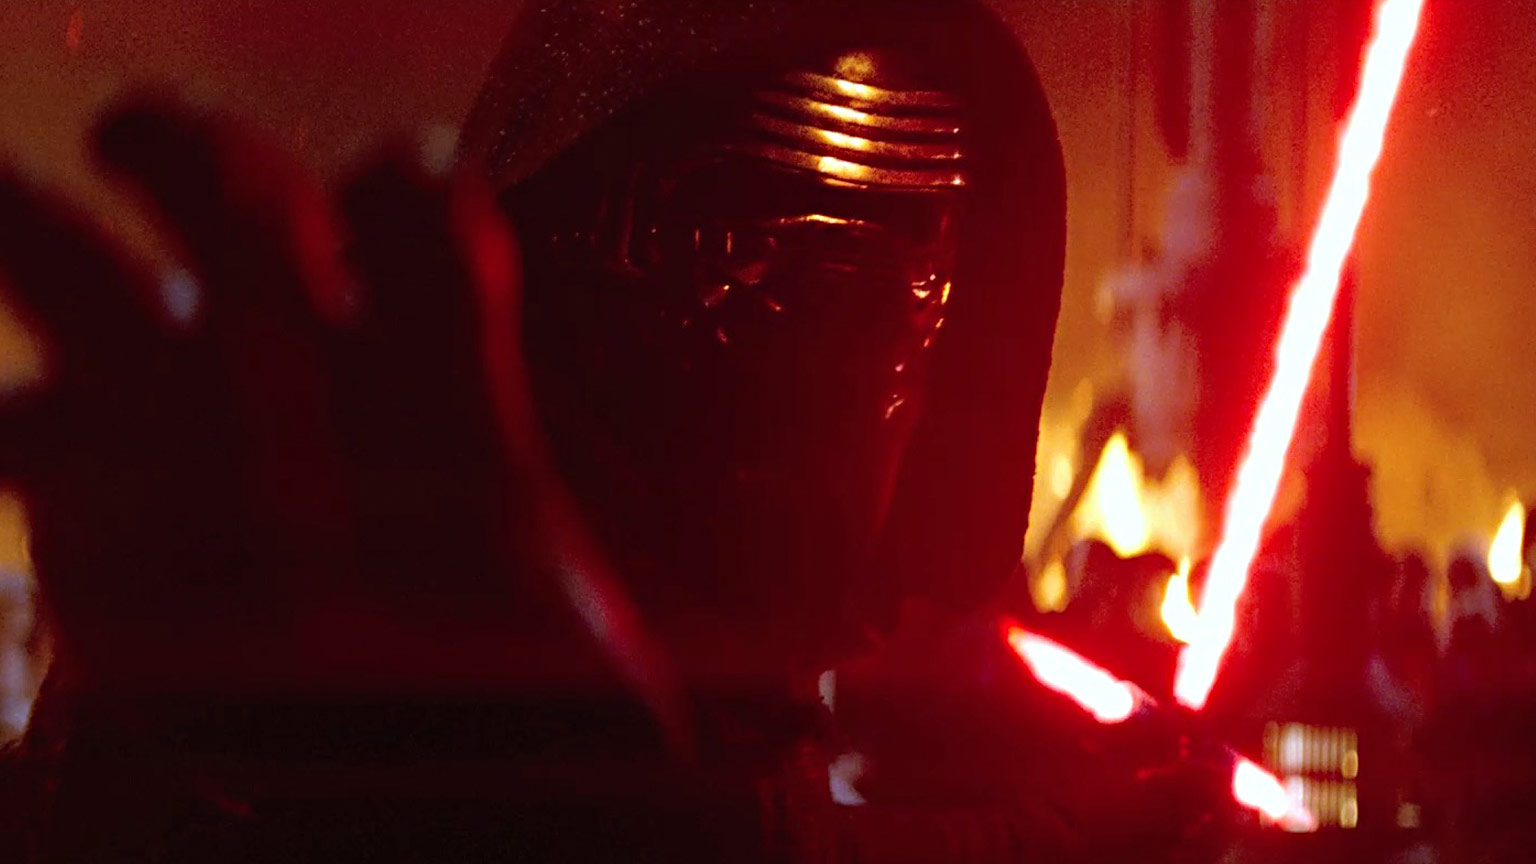 The rumored Star Wars series likely won't see Ben Solo don the iconic Kylo Ren mask, or wield his unique red lightsaber.